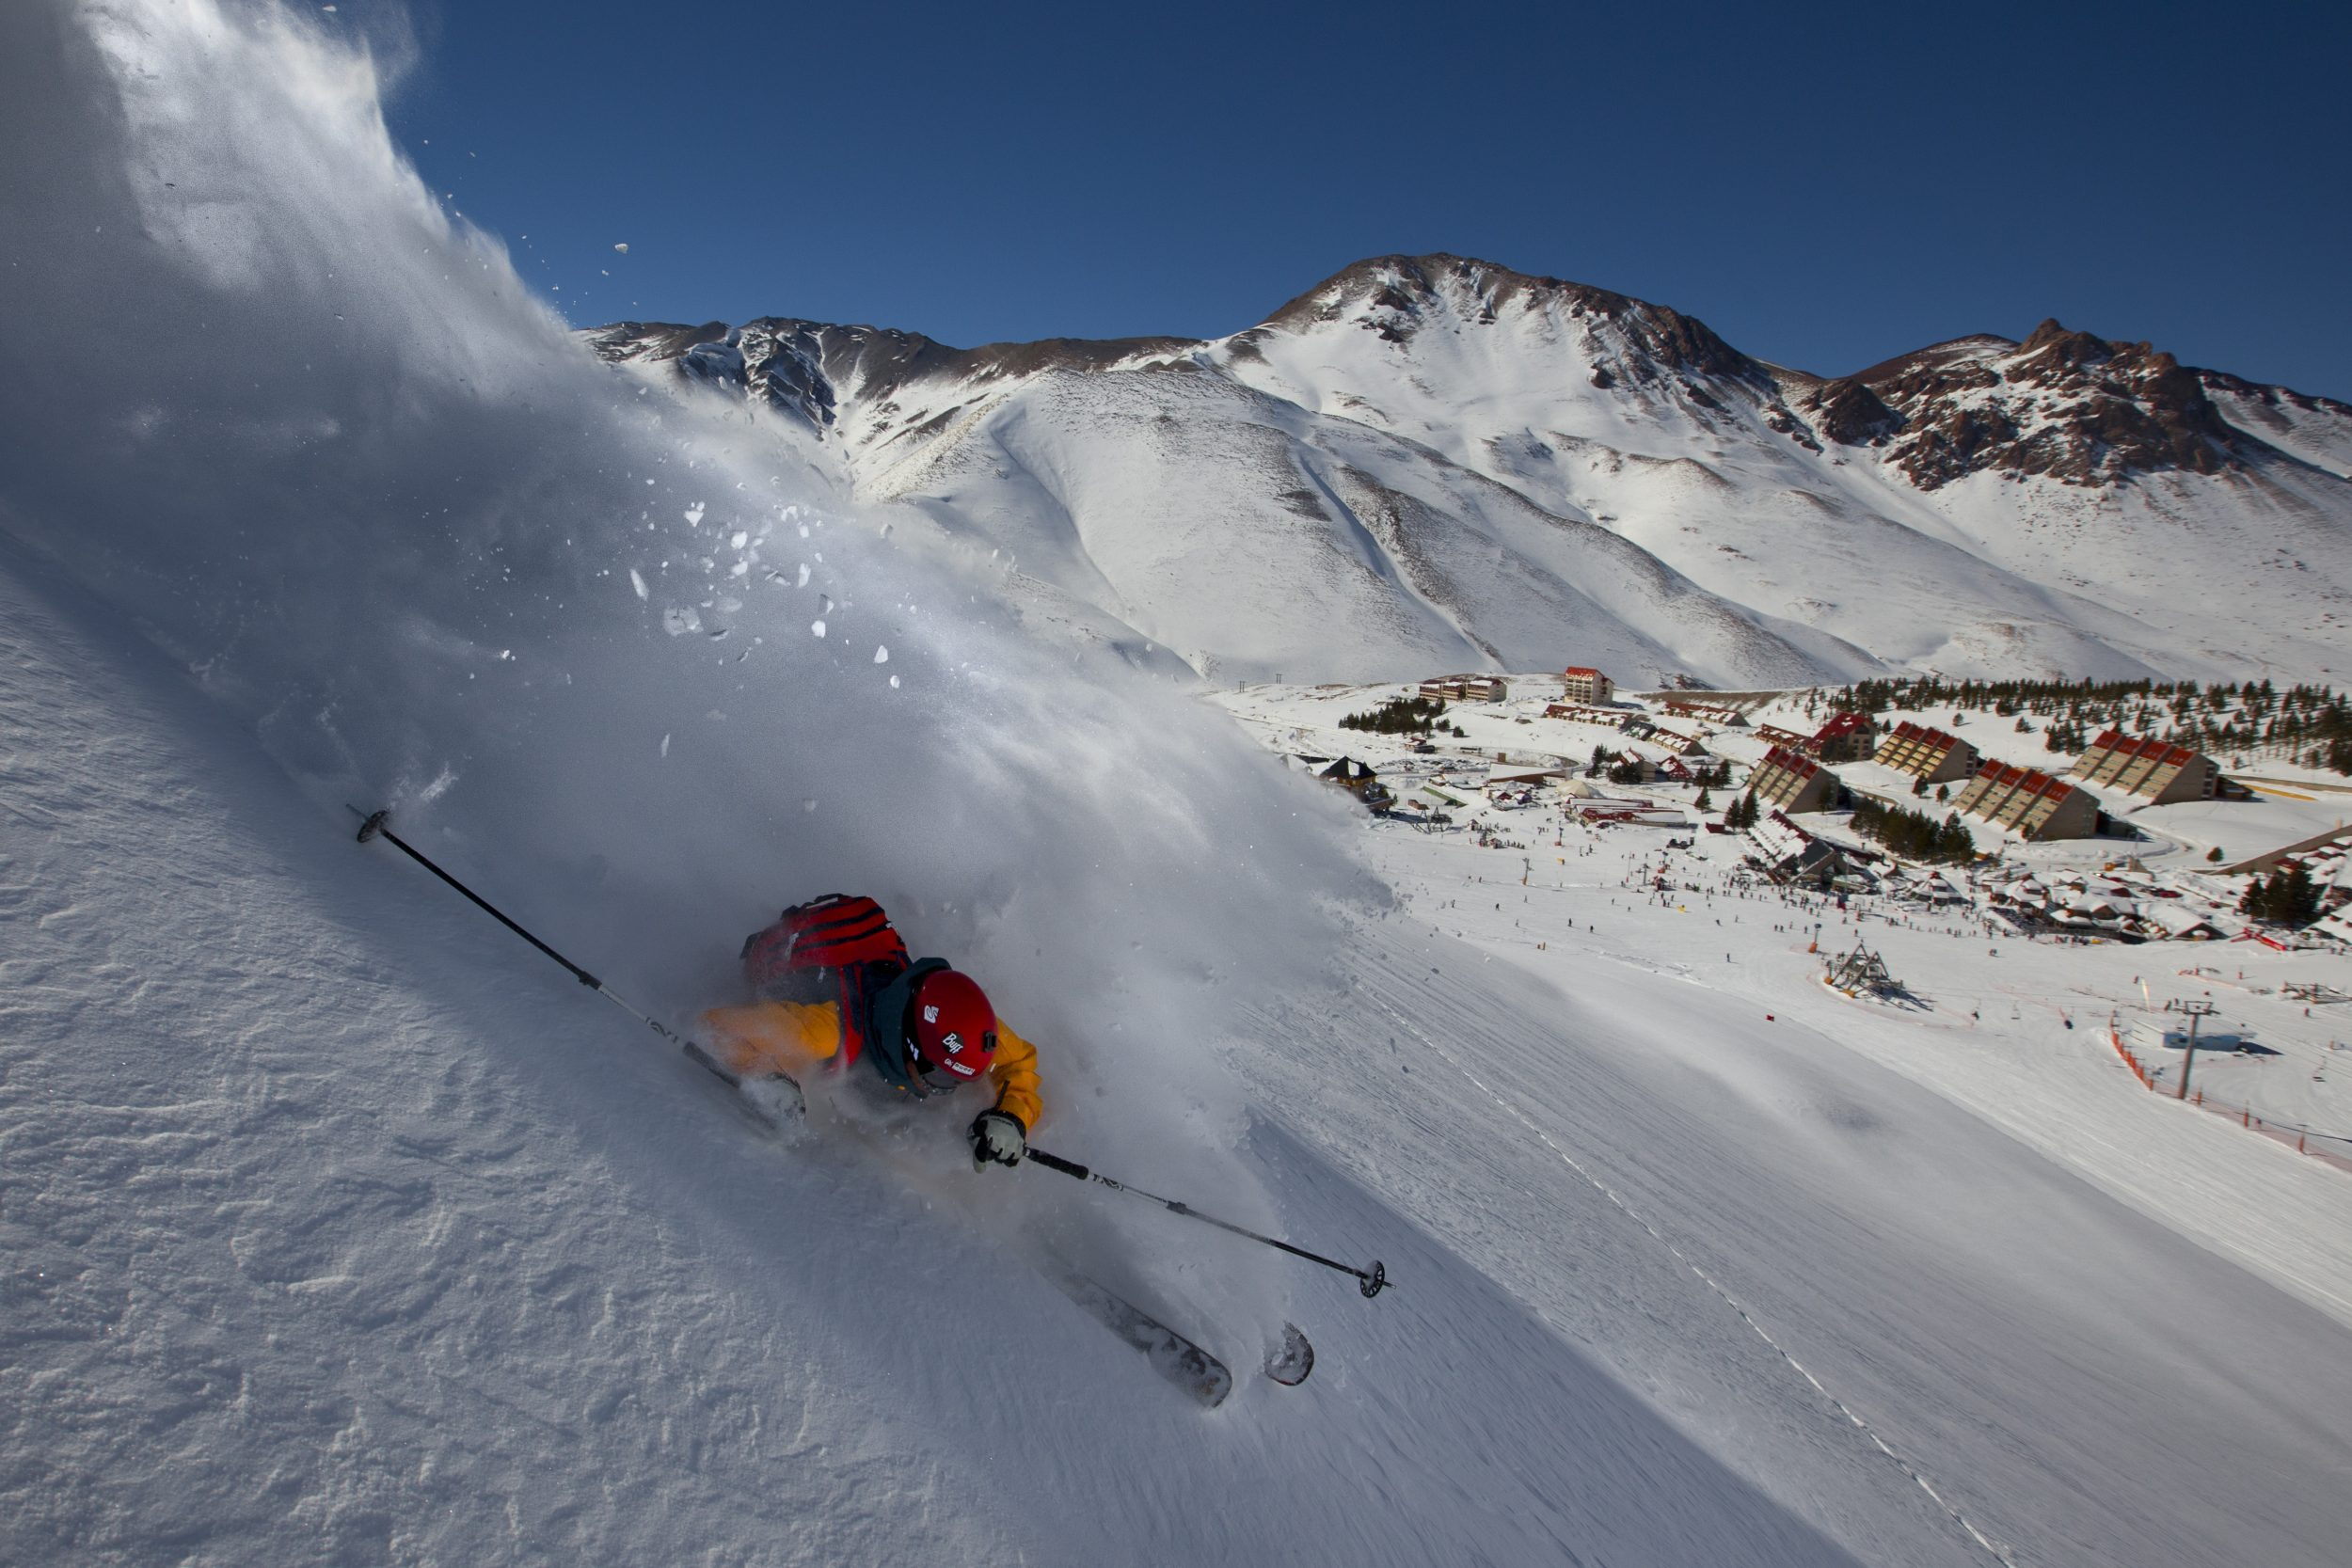 dc1c2bff3fe9 Due to a slow season Las Leñas and Portillo are closing their seasons one  month early. - The-Ski-Guru